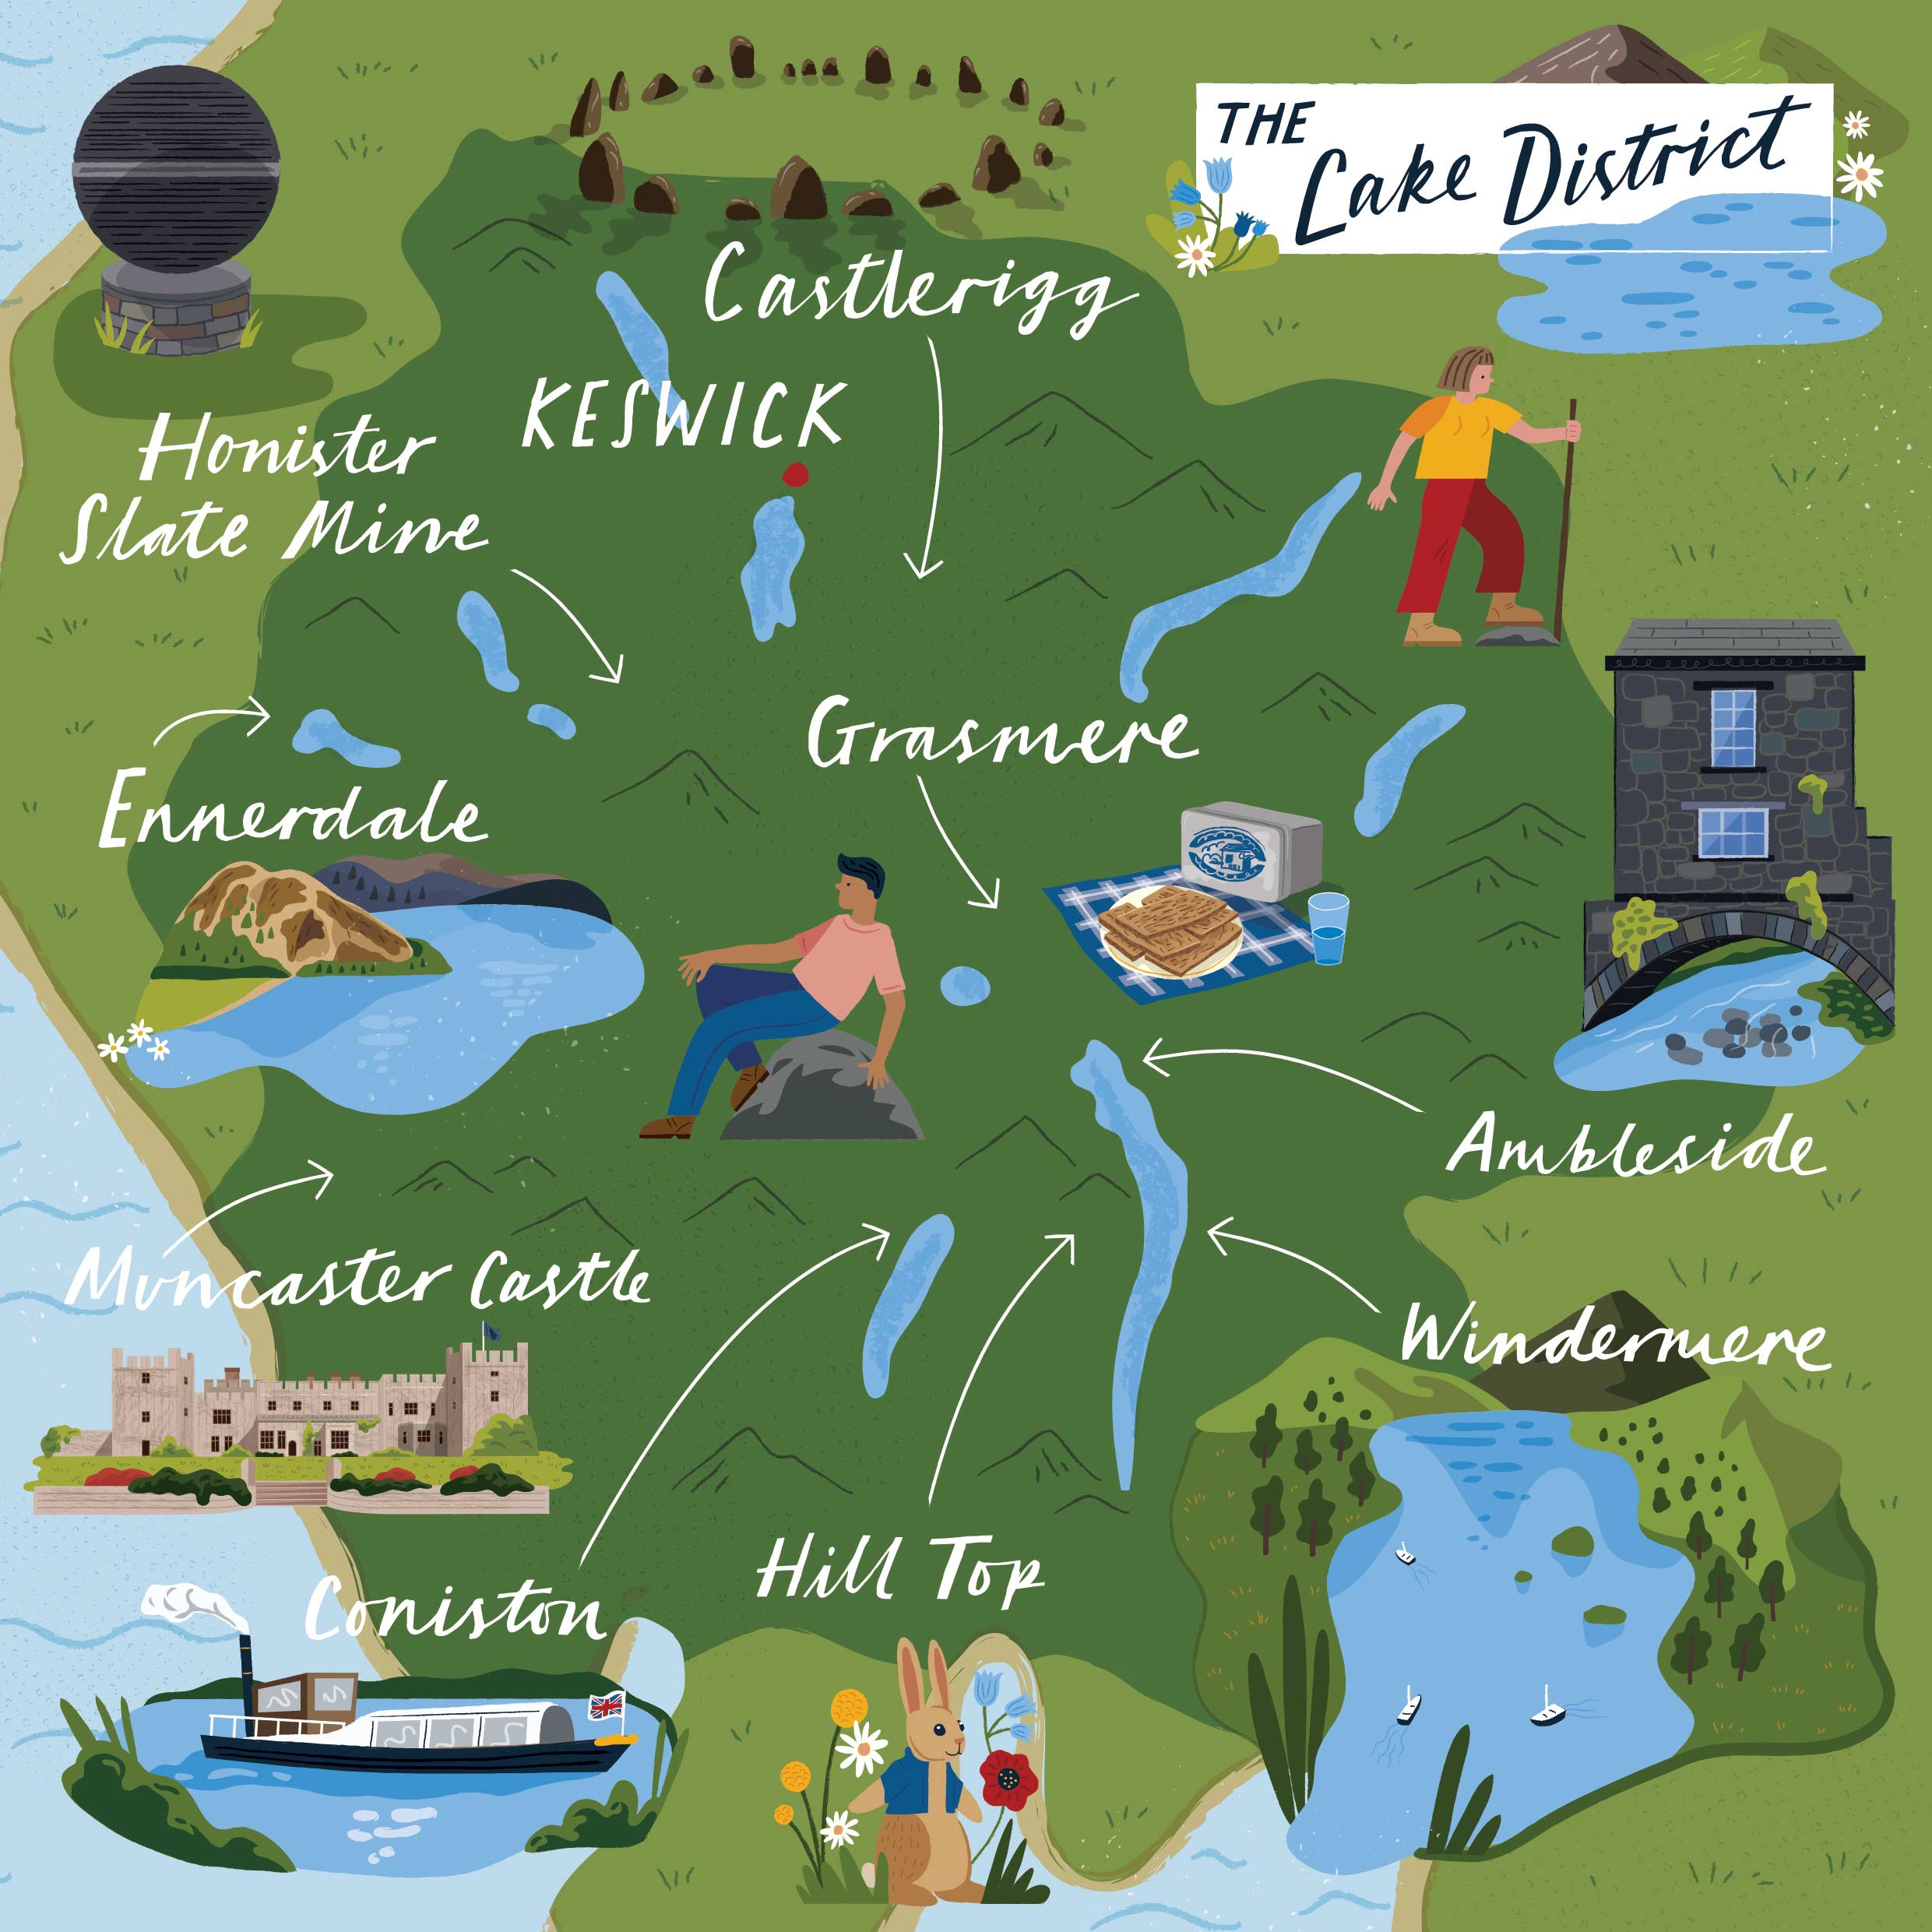 A Map of The Lake District for Discover Britain by Elly Jahnz